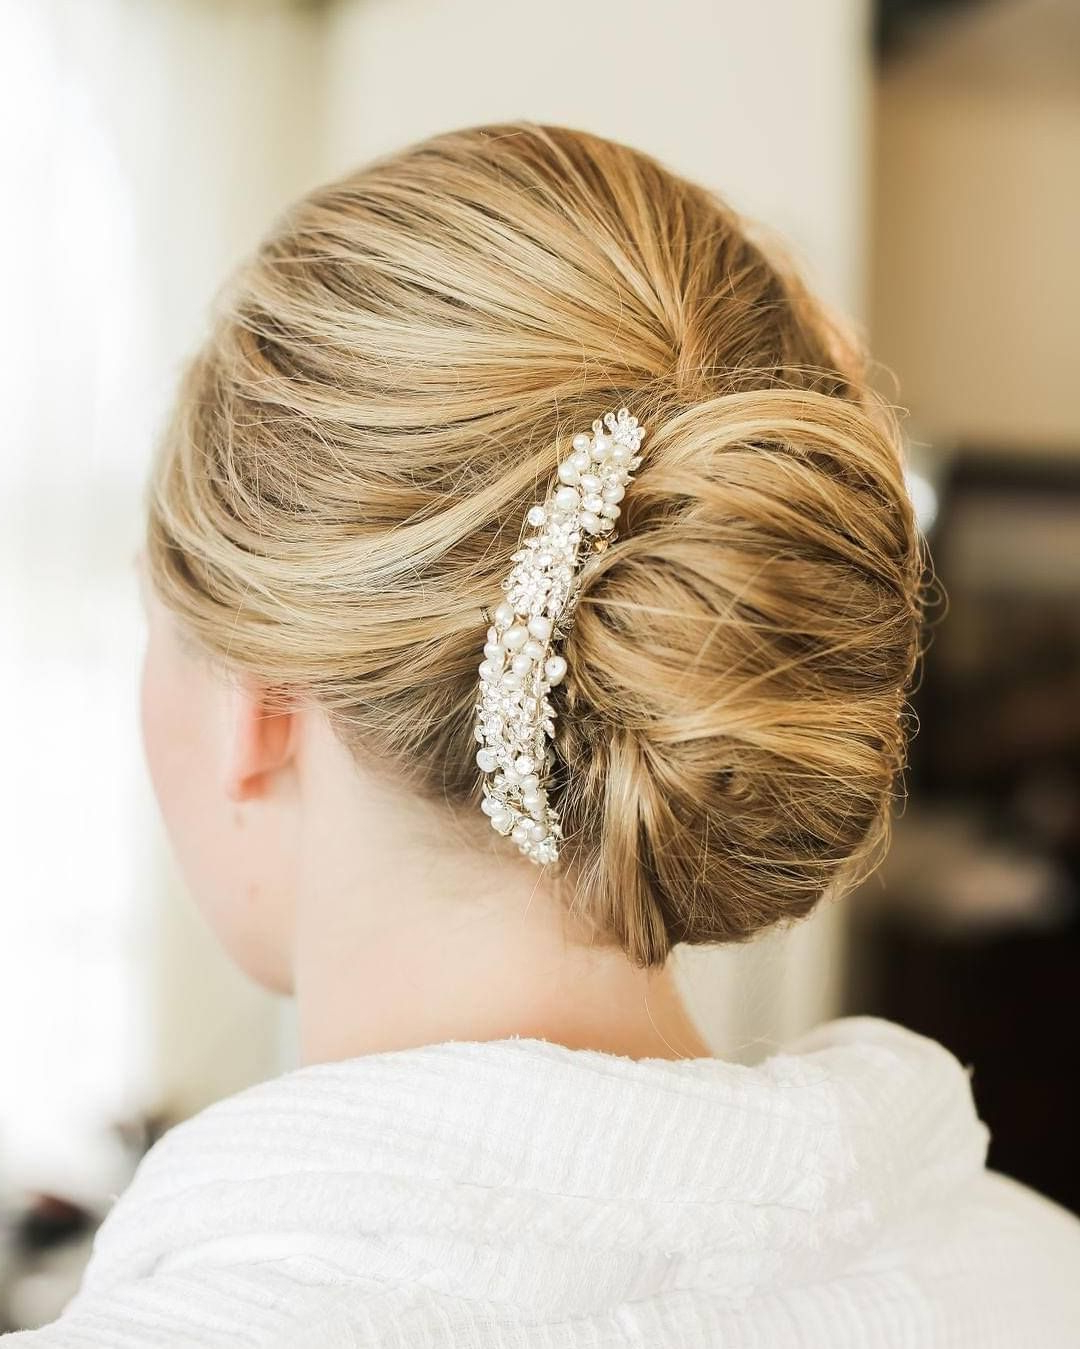 Womens Hairstyles Long Red Intended For Famous Undone Low Bun Bridal Hairstyles With Floral Headband (View 20 of 20)